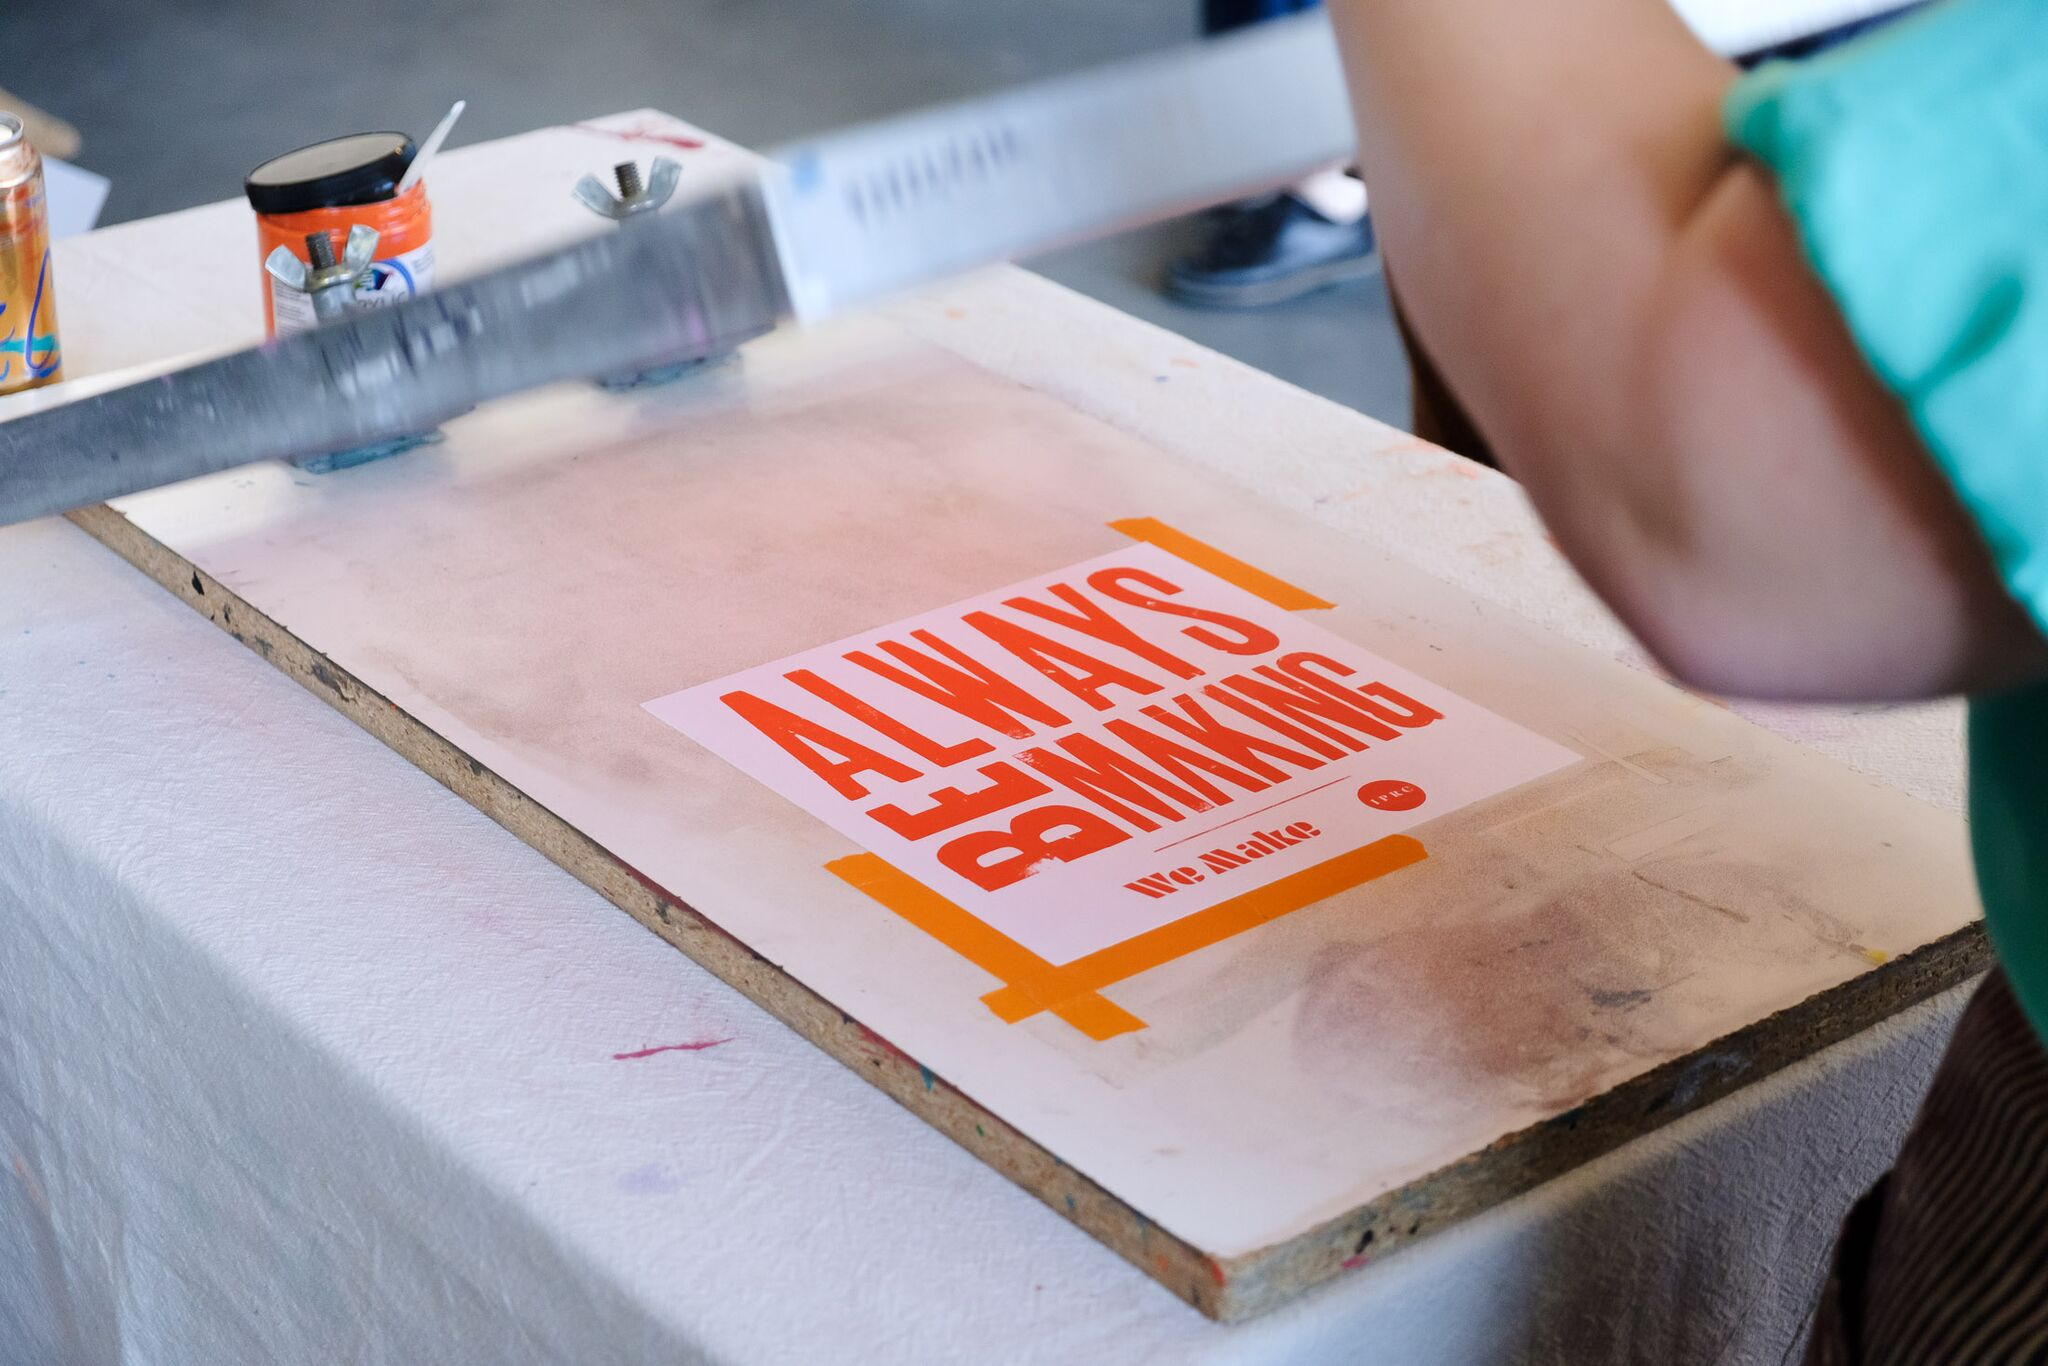 IPRC helped folks make their own screen print at our lettering show, 26.